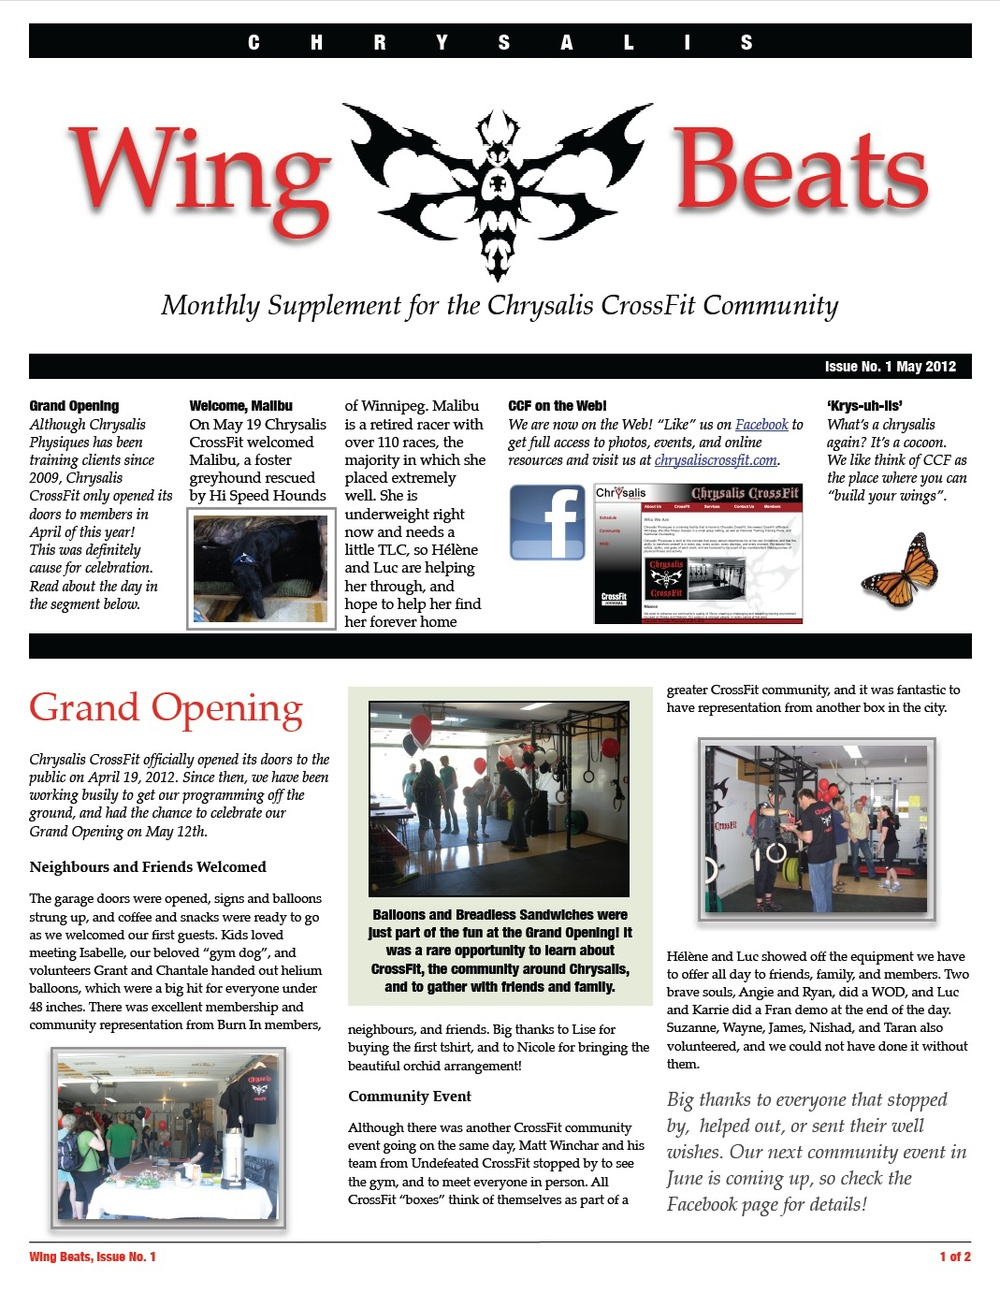 WingBeats Issue #1 - May 2012